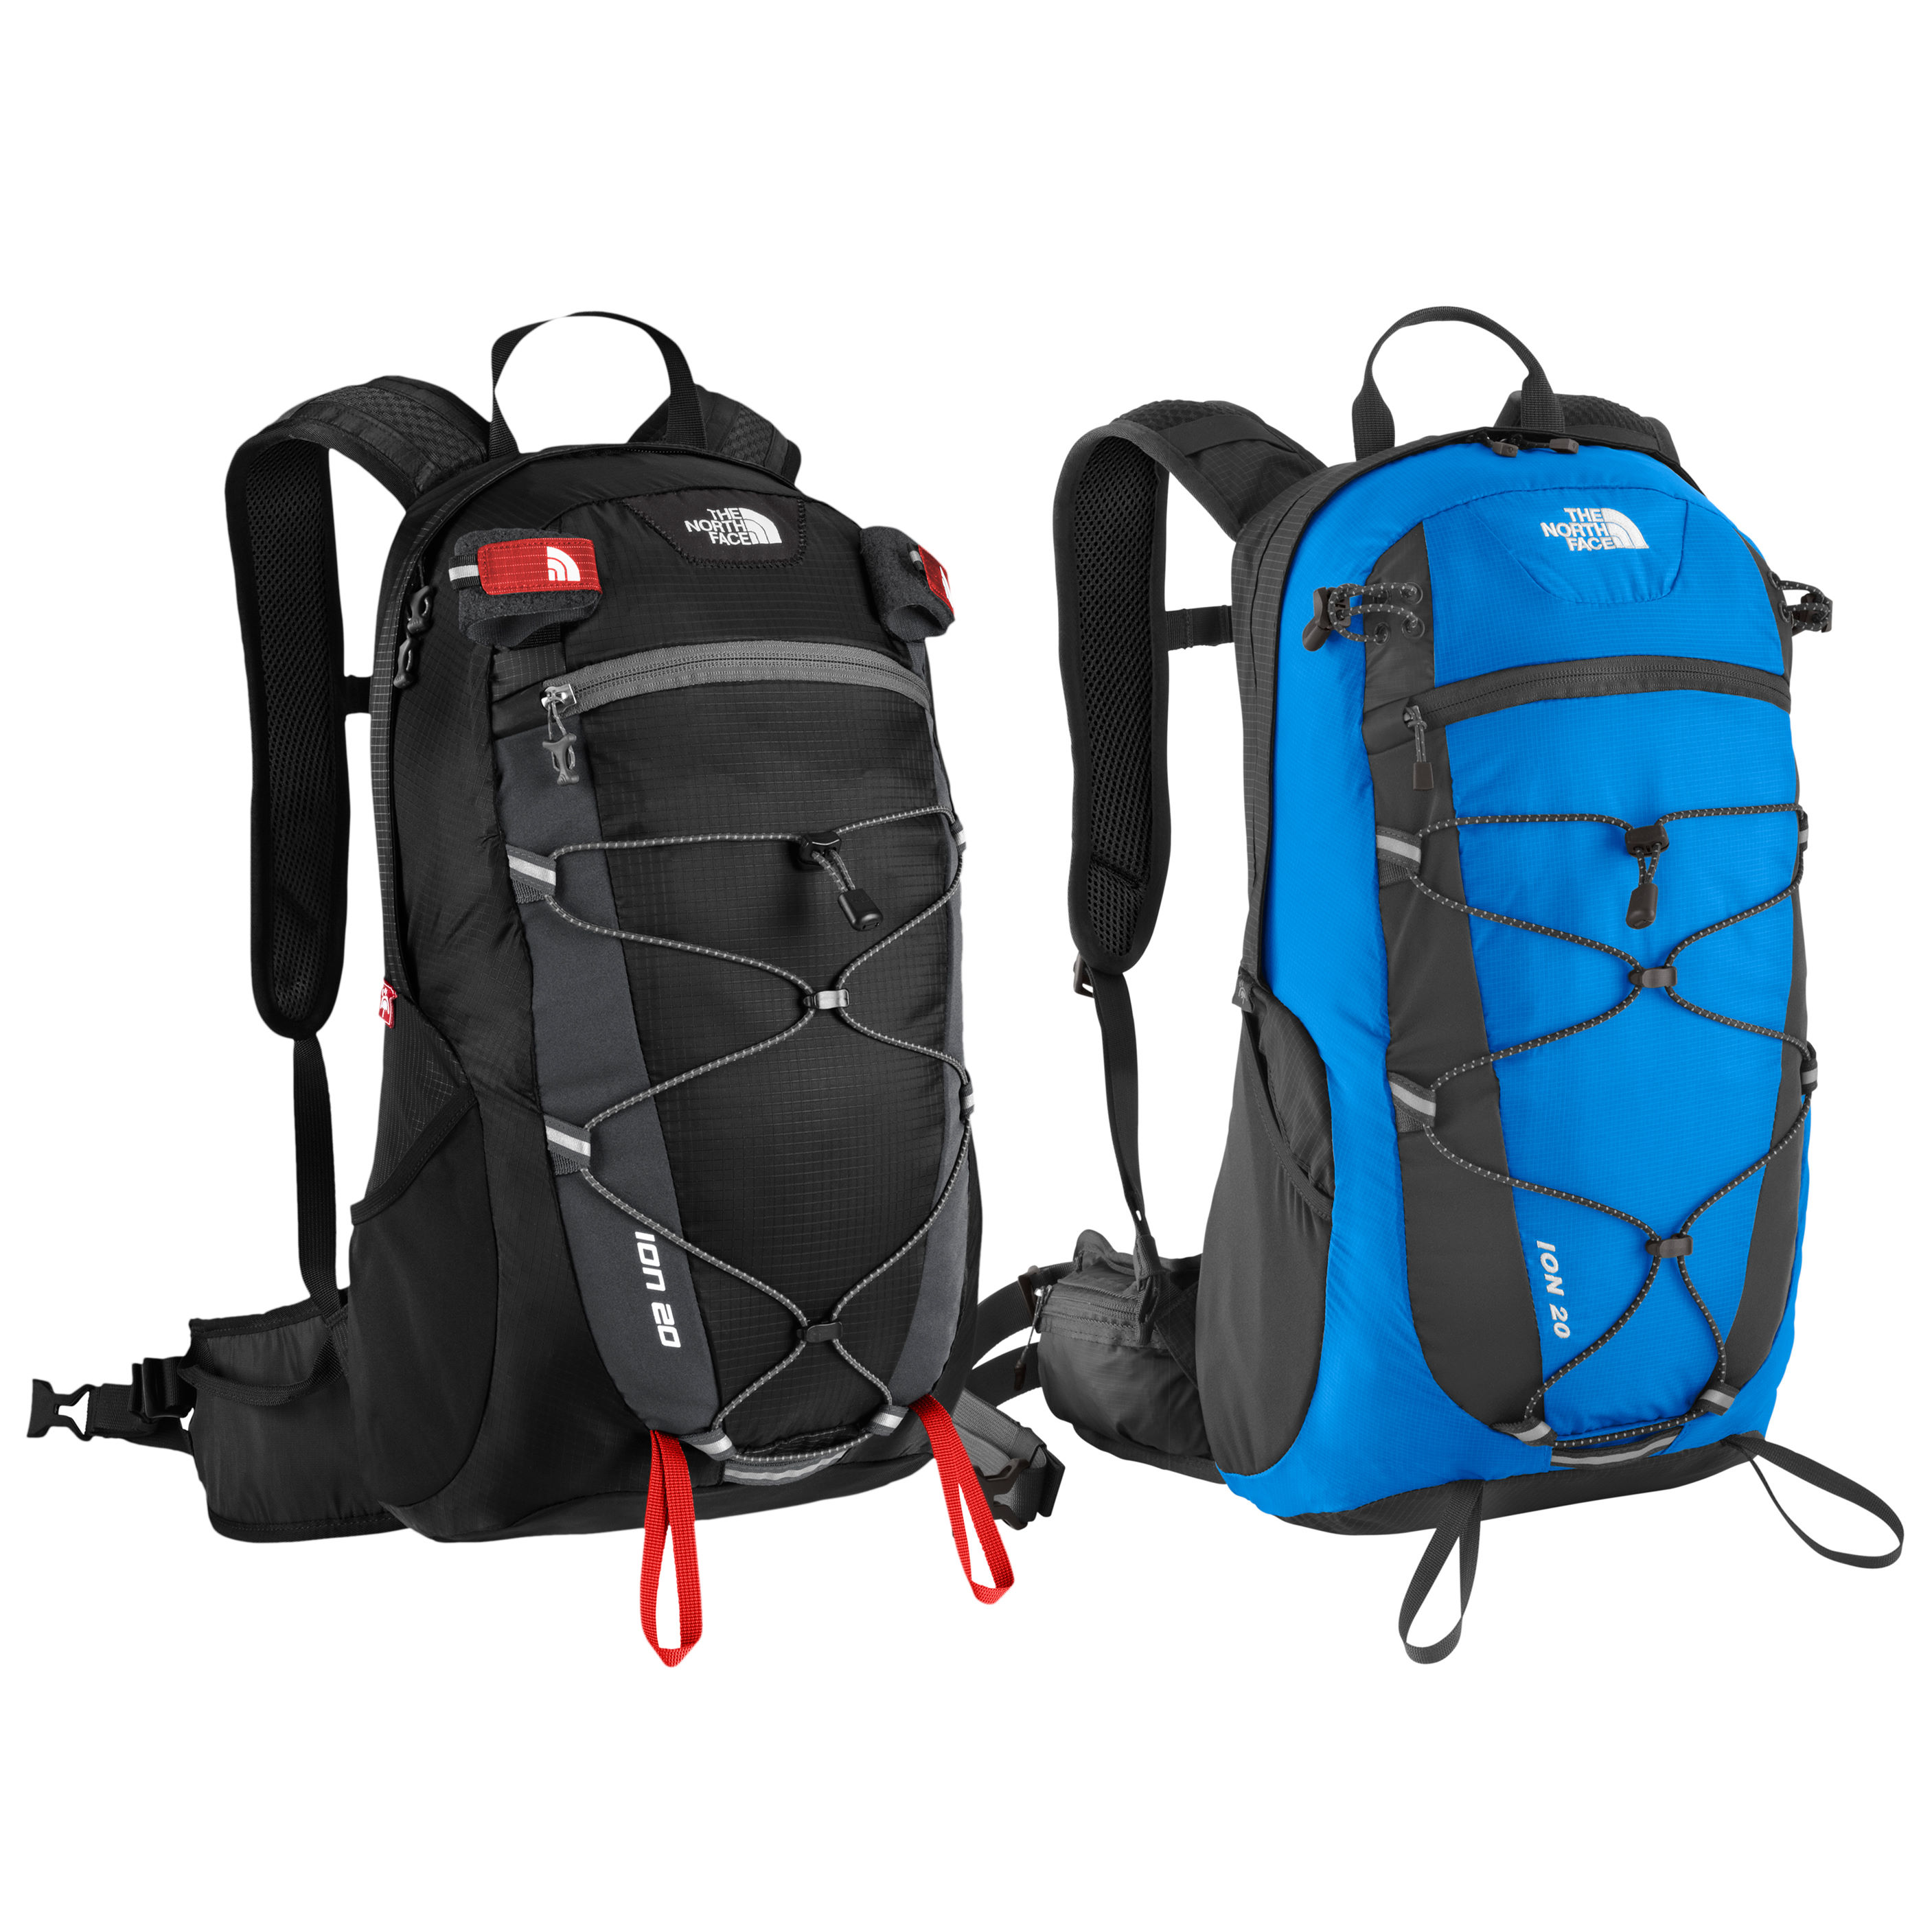 The North Face Ion 20 Rucksack (AW 2012)  sc 1 st  Wiggle & wiggle.com | The North Face Ion 20 Rucksack (AW 2012) | Backpacks